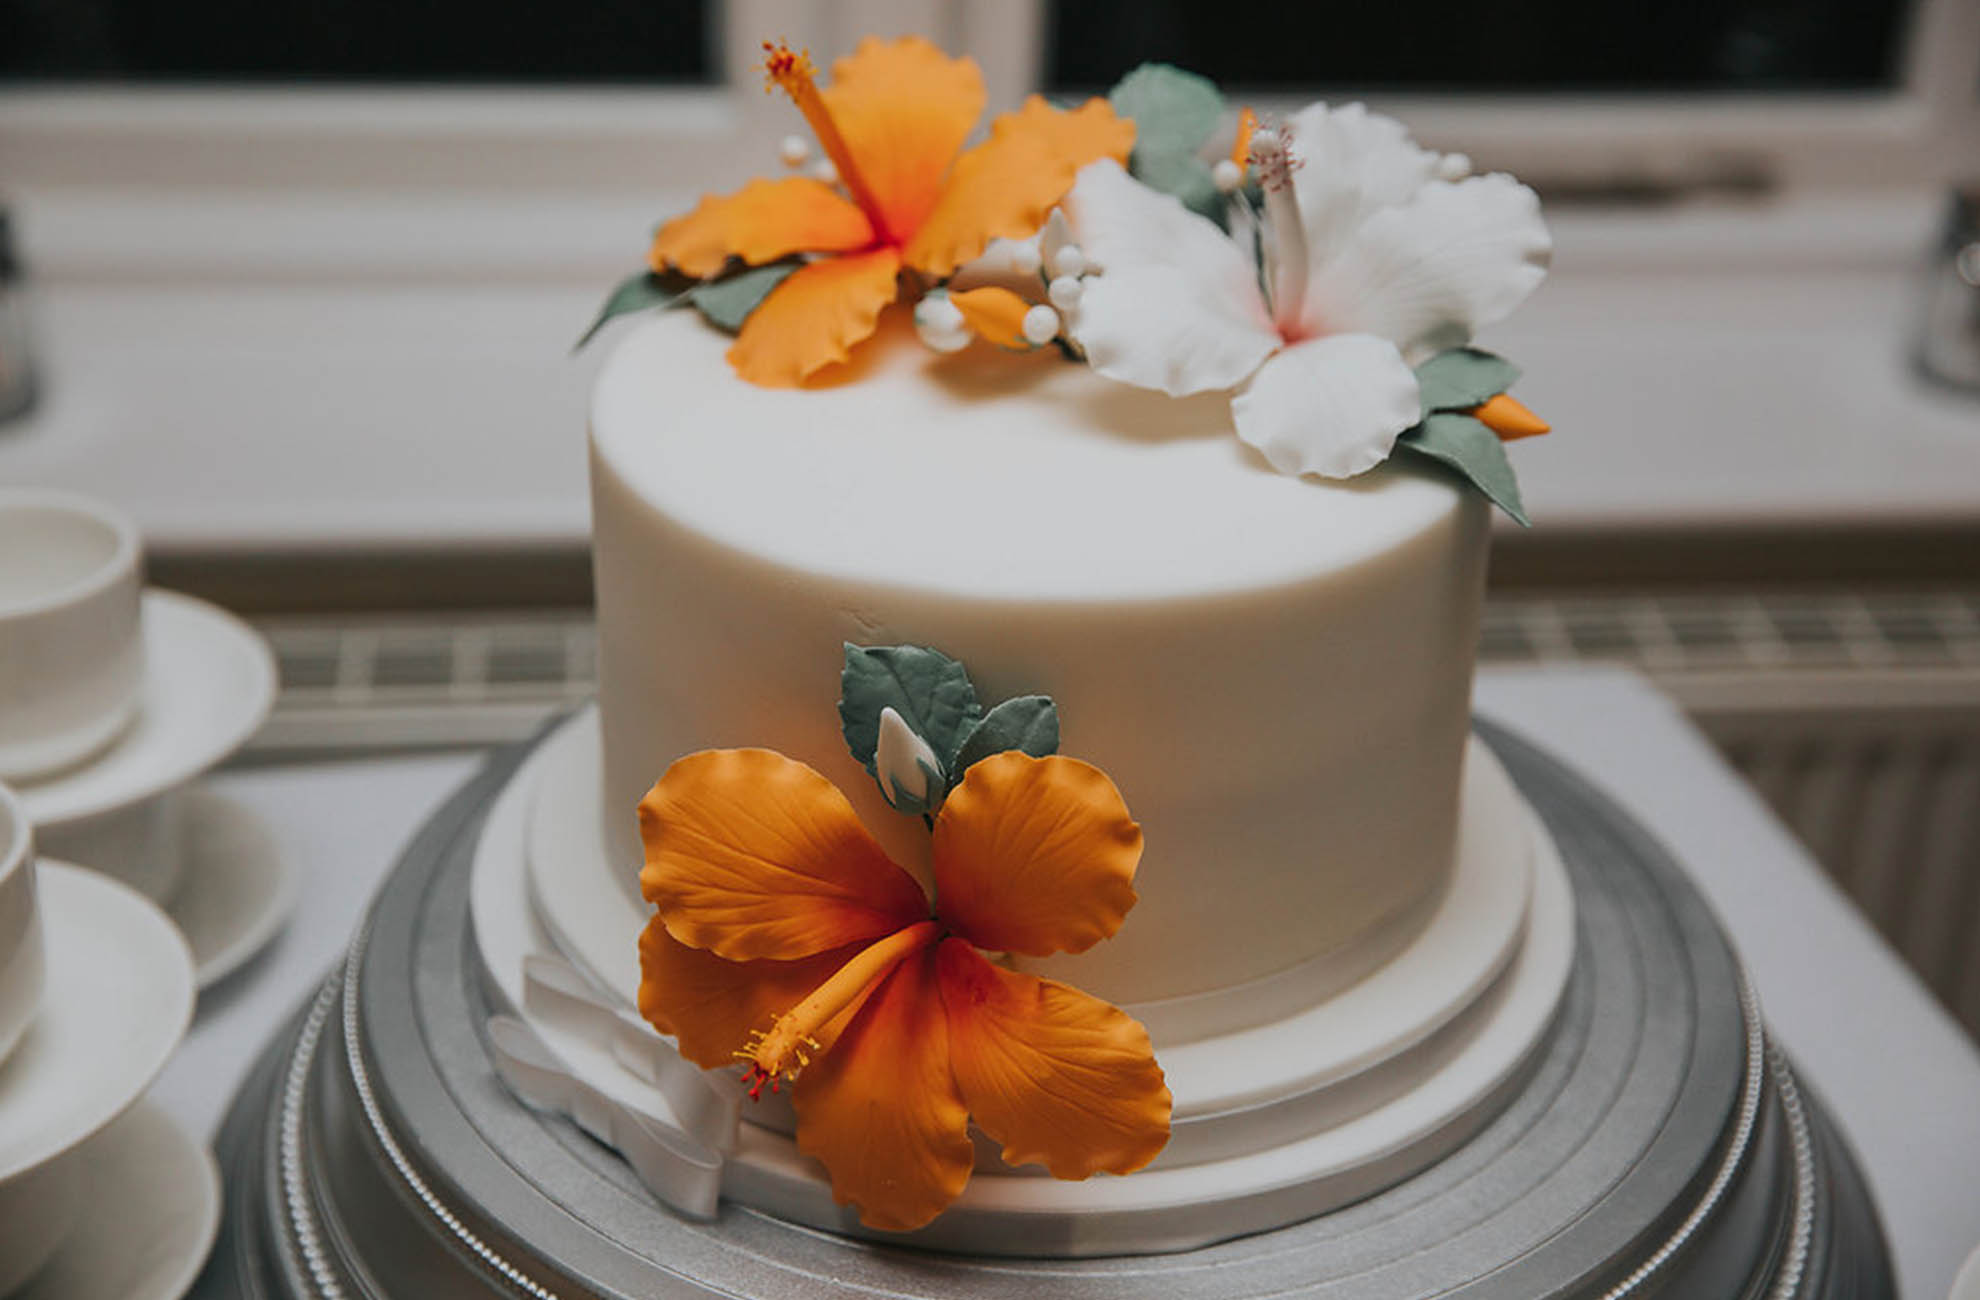 Tropical orange flowers adorn a traditional white wedding cake for an intimate wedding at Combermere Abbey